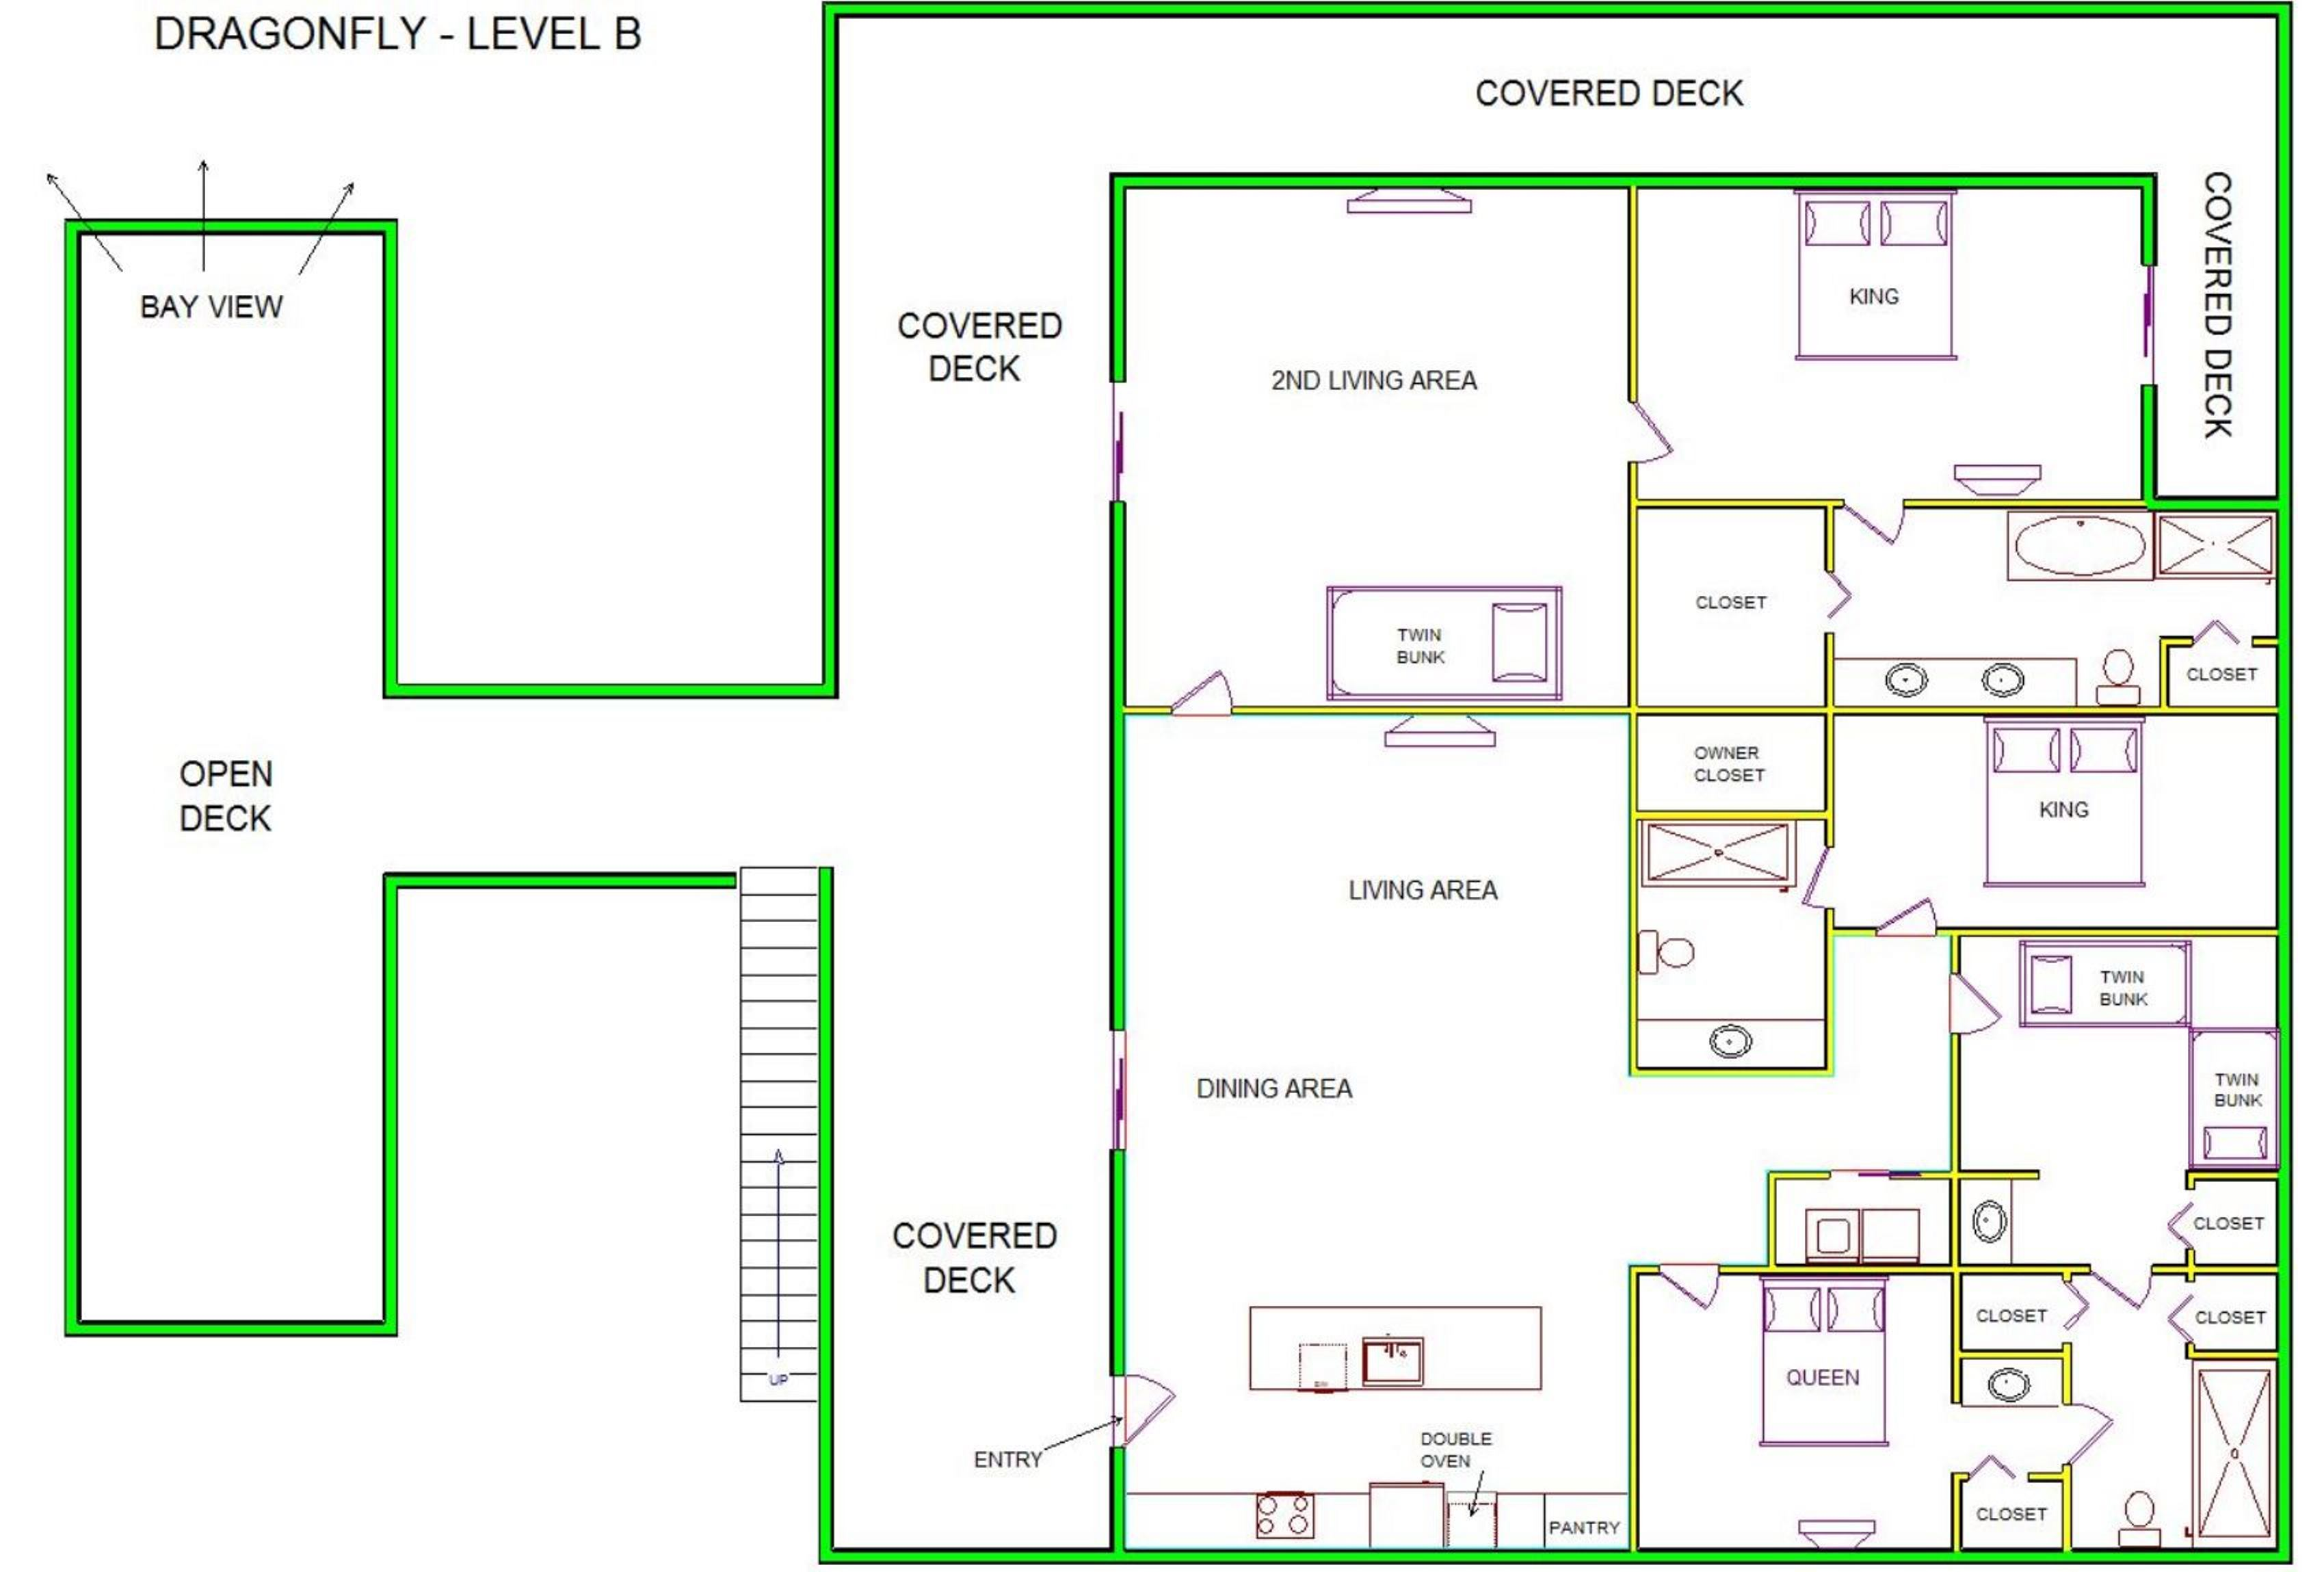 A level B layout view of Sand 'N Sea's canal house vacation rental in Galveston named Dragonfly